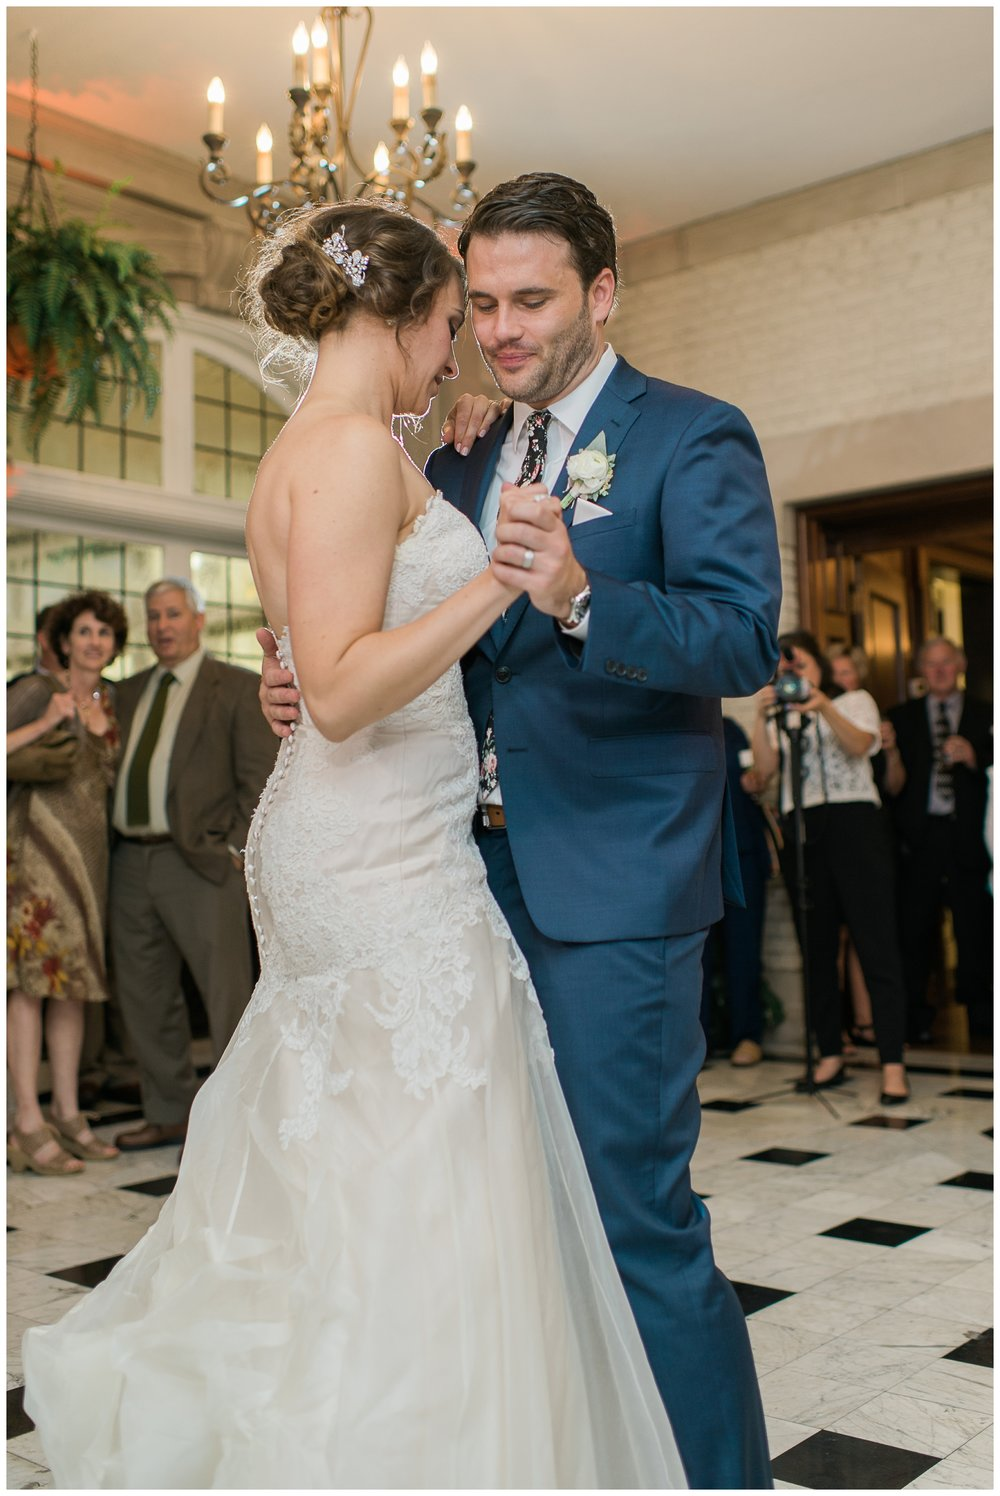 Rebecca_Bridges_Photography_Indianapolis_Wedding_Photographer_5254.jpg